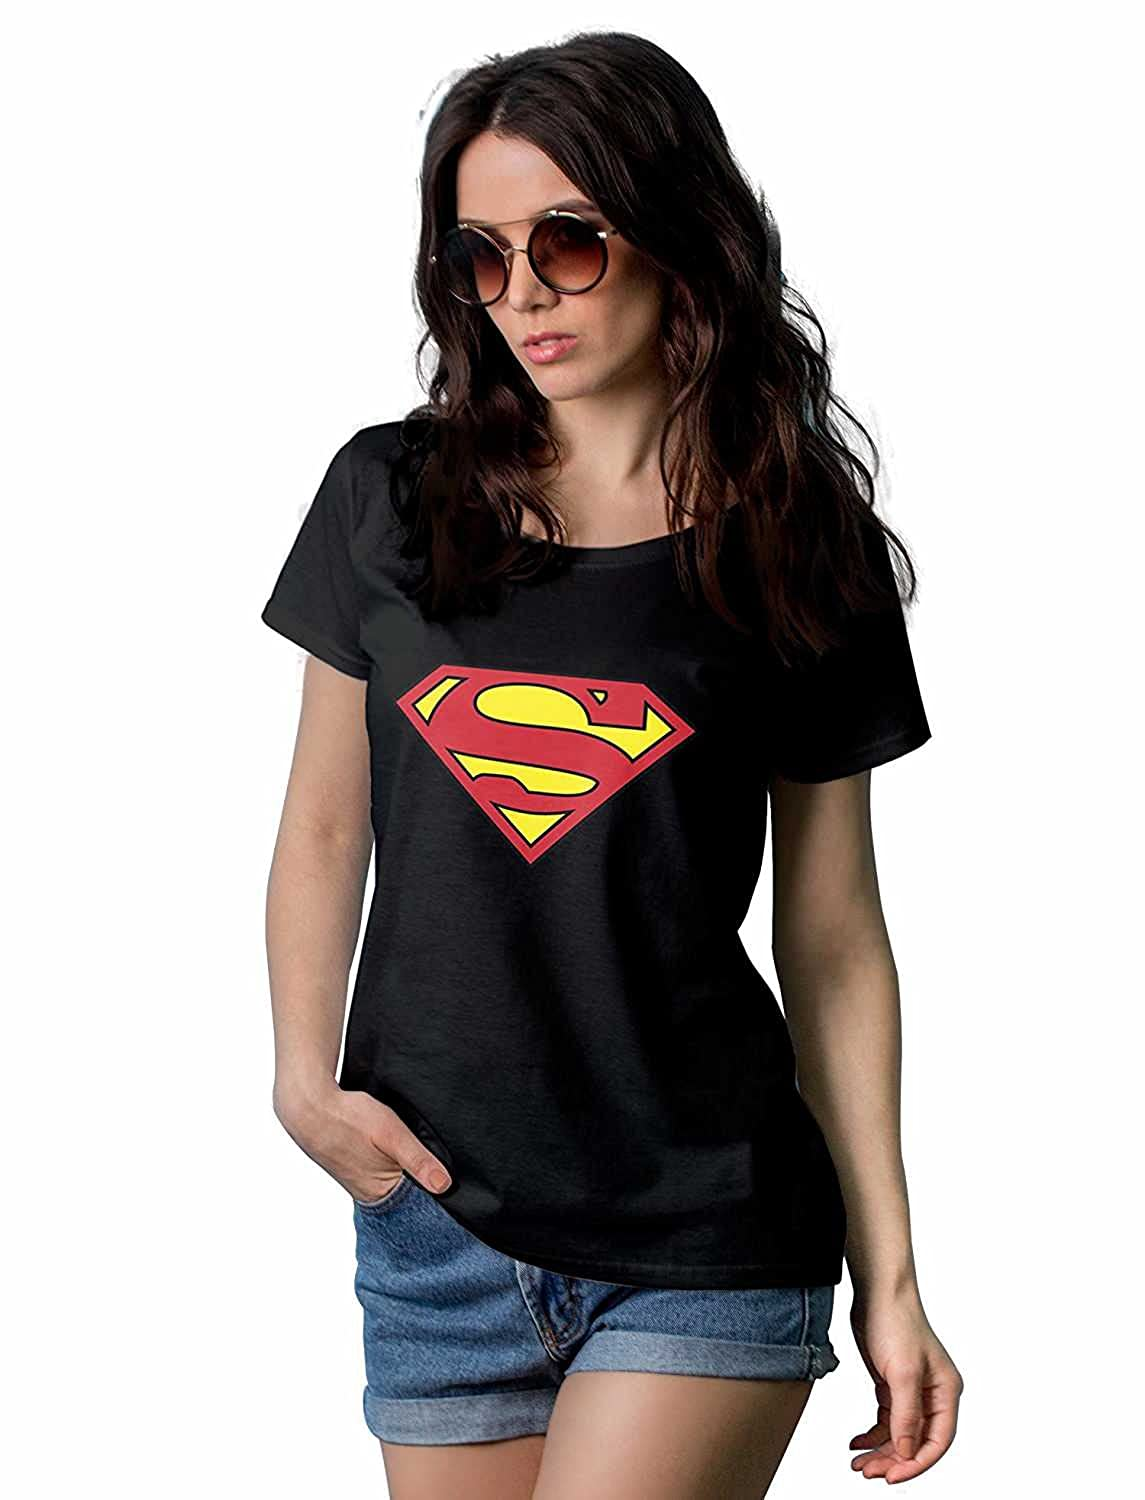 bda29289769 Professionally printed super soft Superman T Shirts. Our lightweight fitted  tees are made from ultra soft cotton to get that comfortable fit and feel.